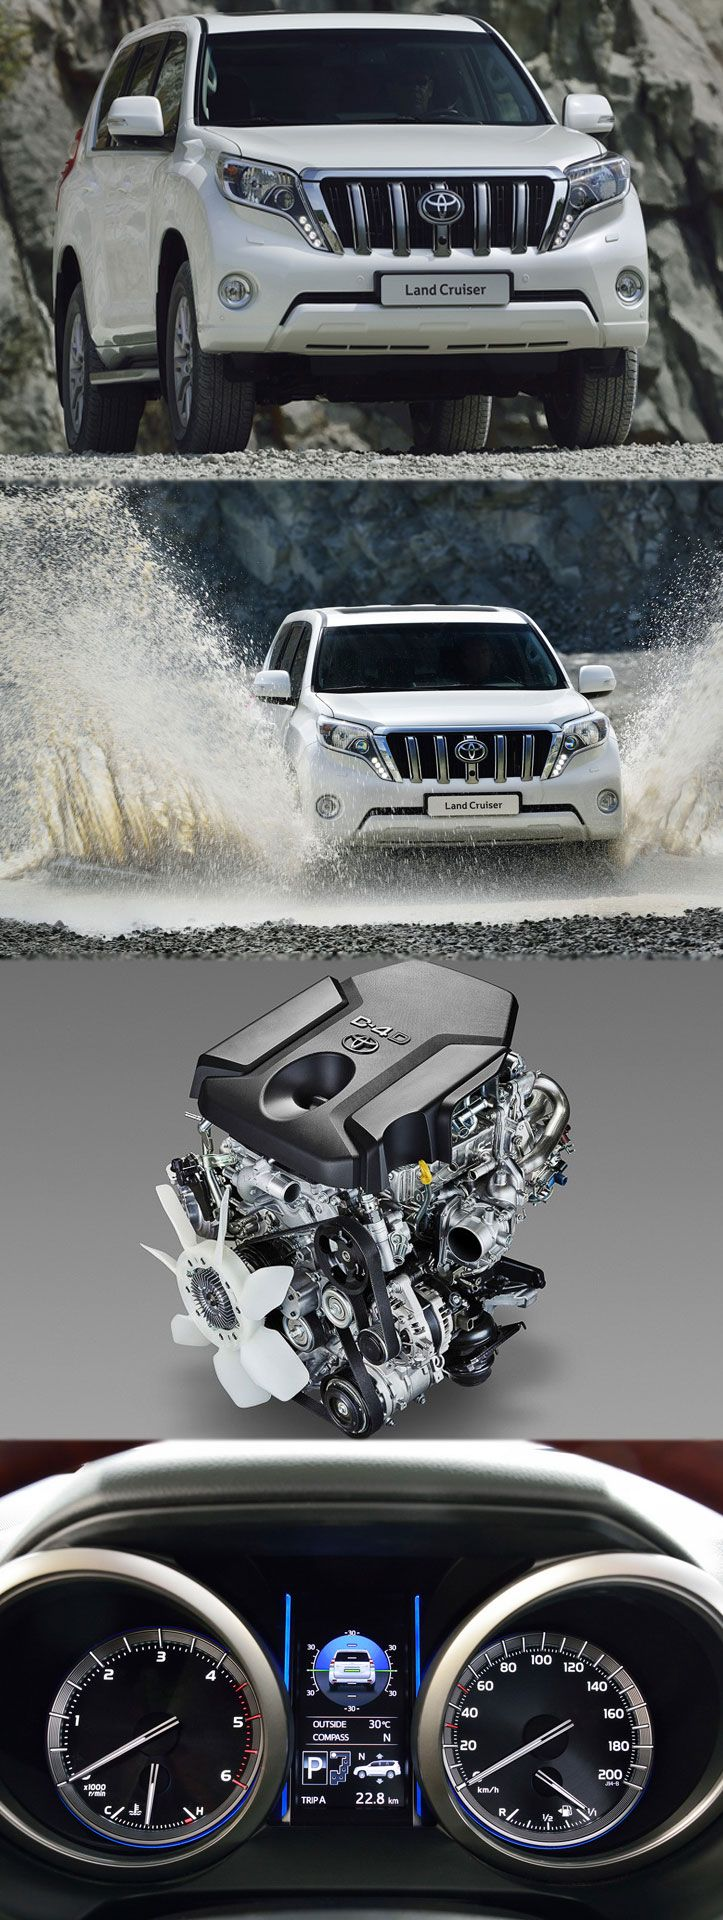 landcruiser gets 6 speed auto gearbox and new diesel engine get more